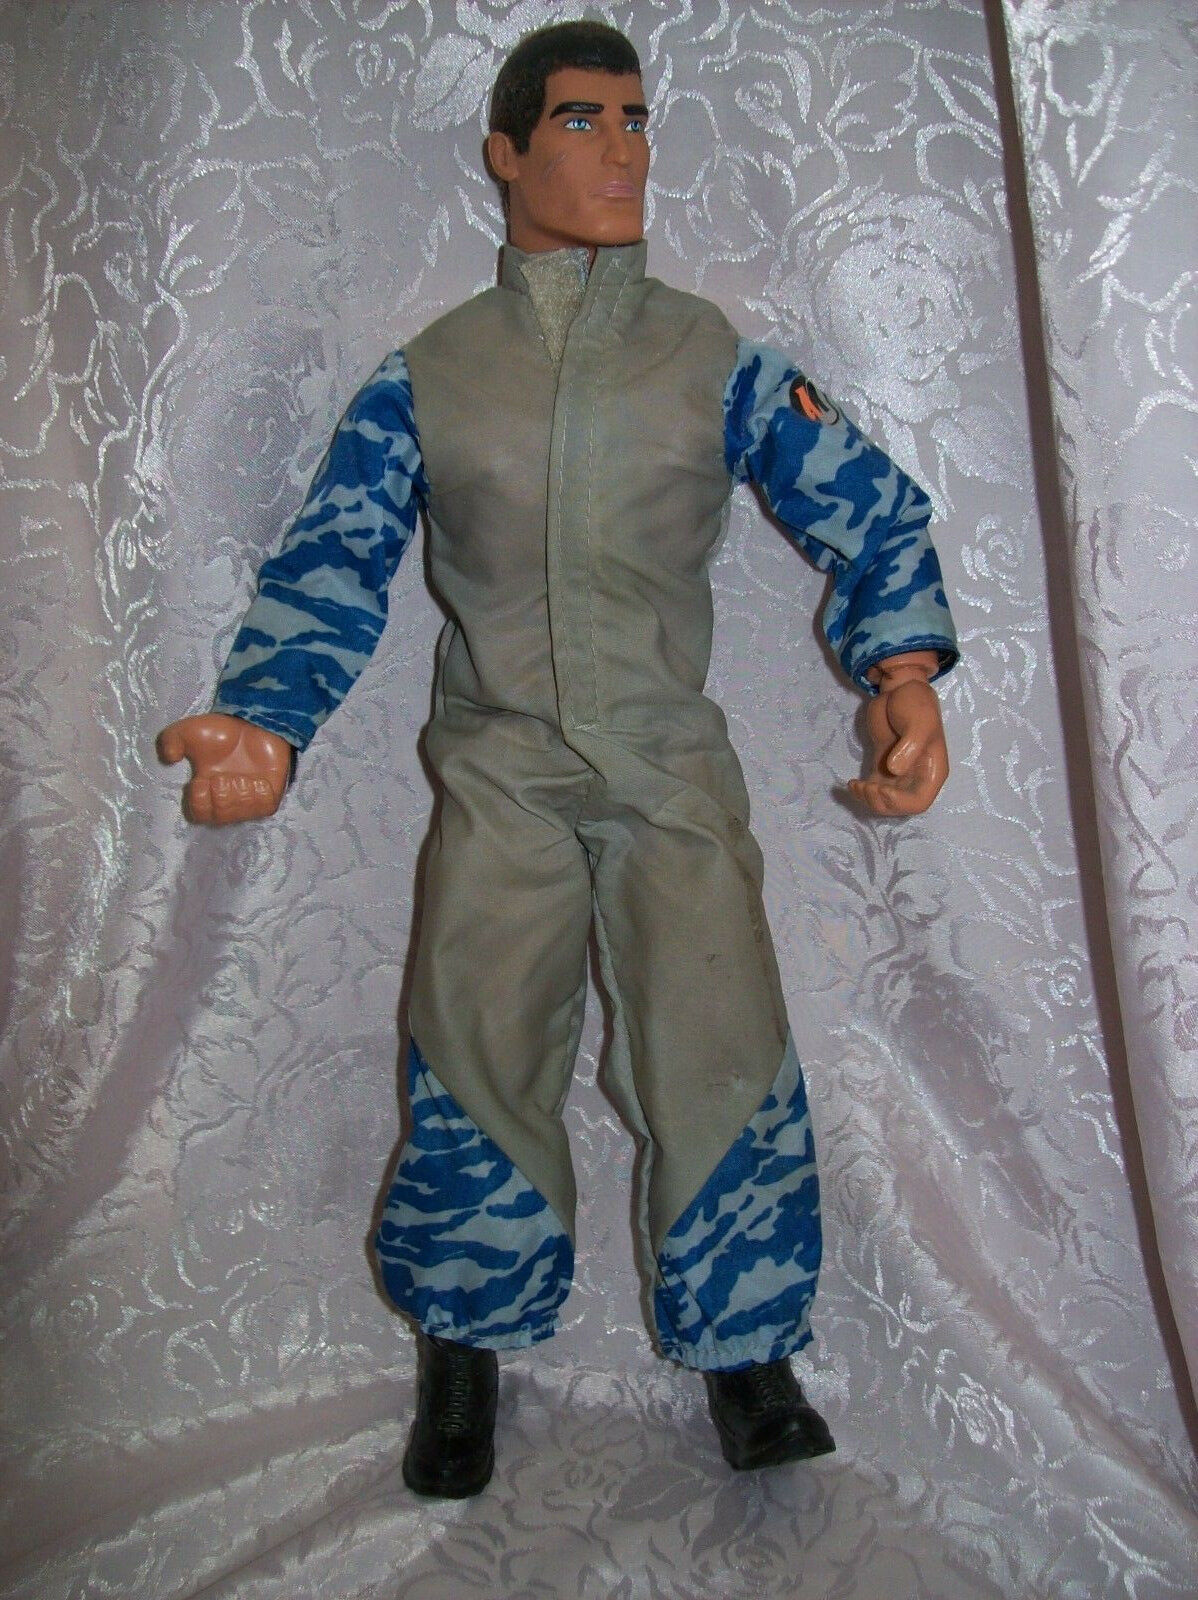 Wirkung MAN With Camo Jump Suit Harness And Parachute